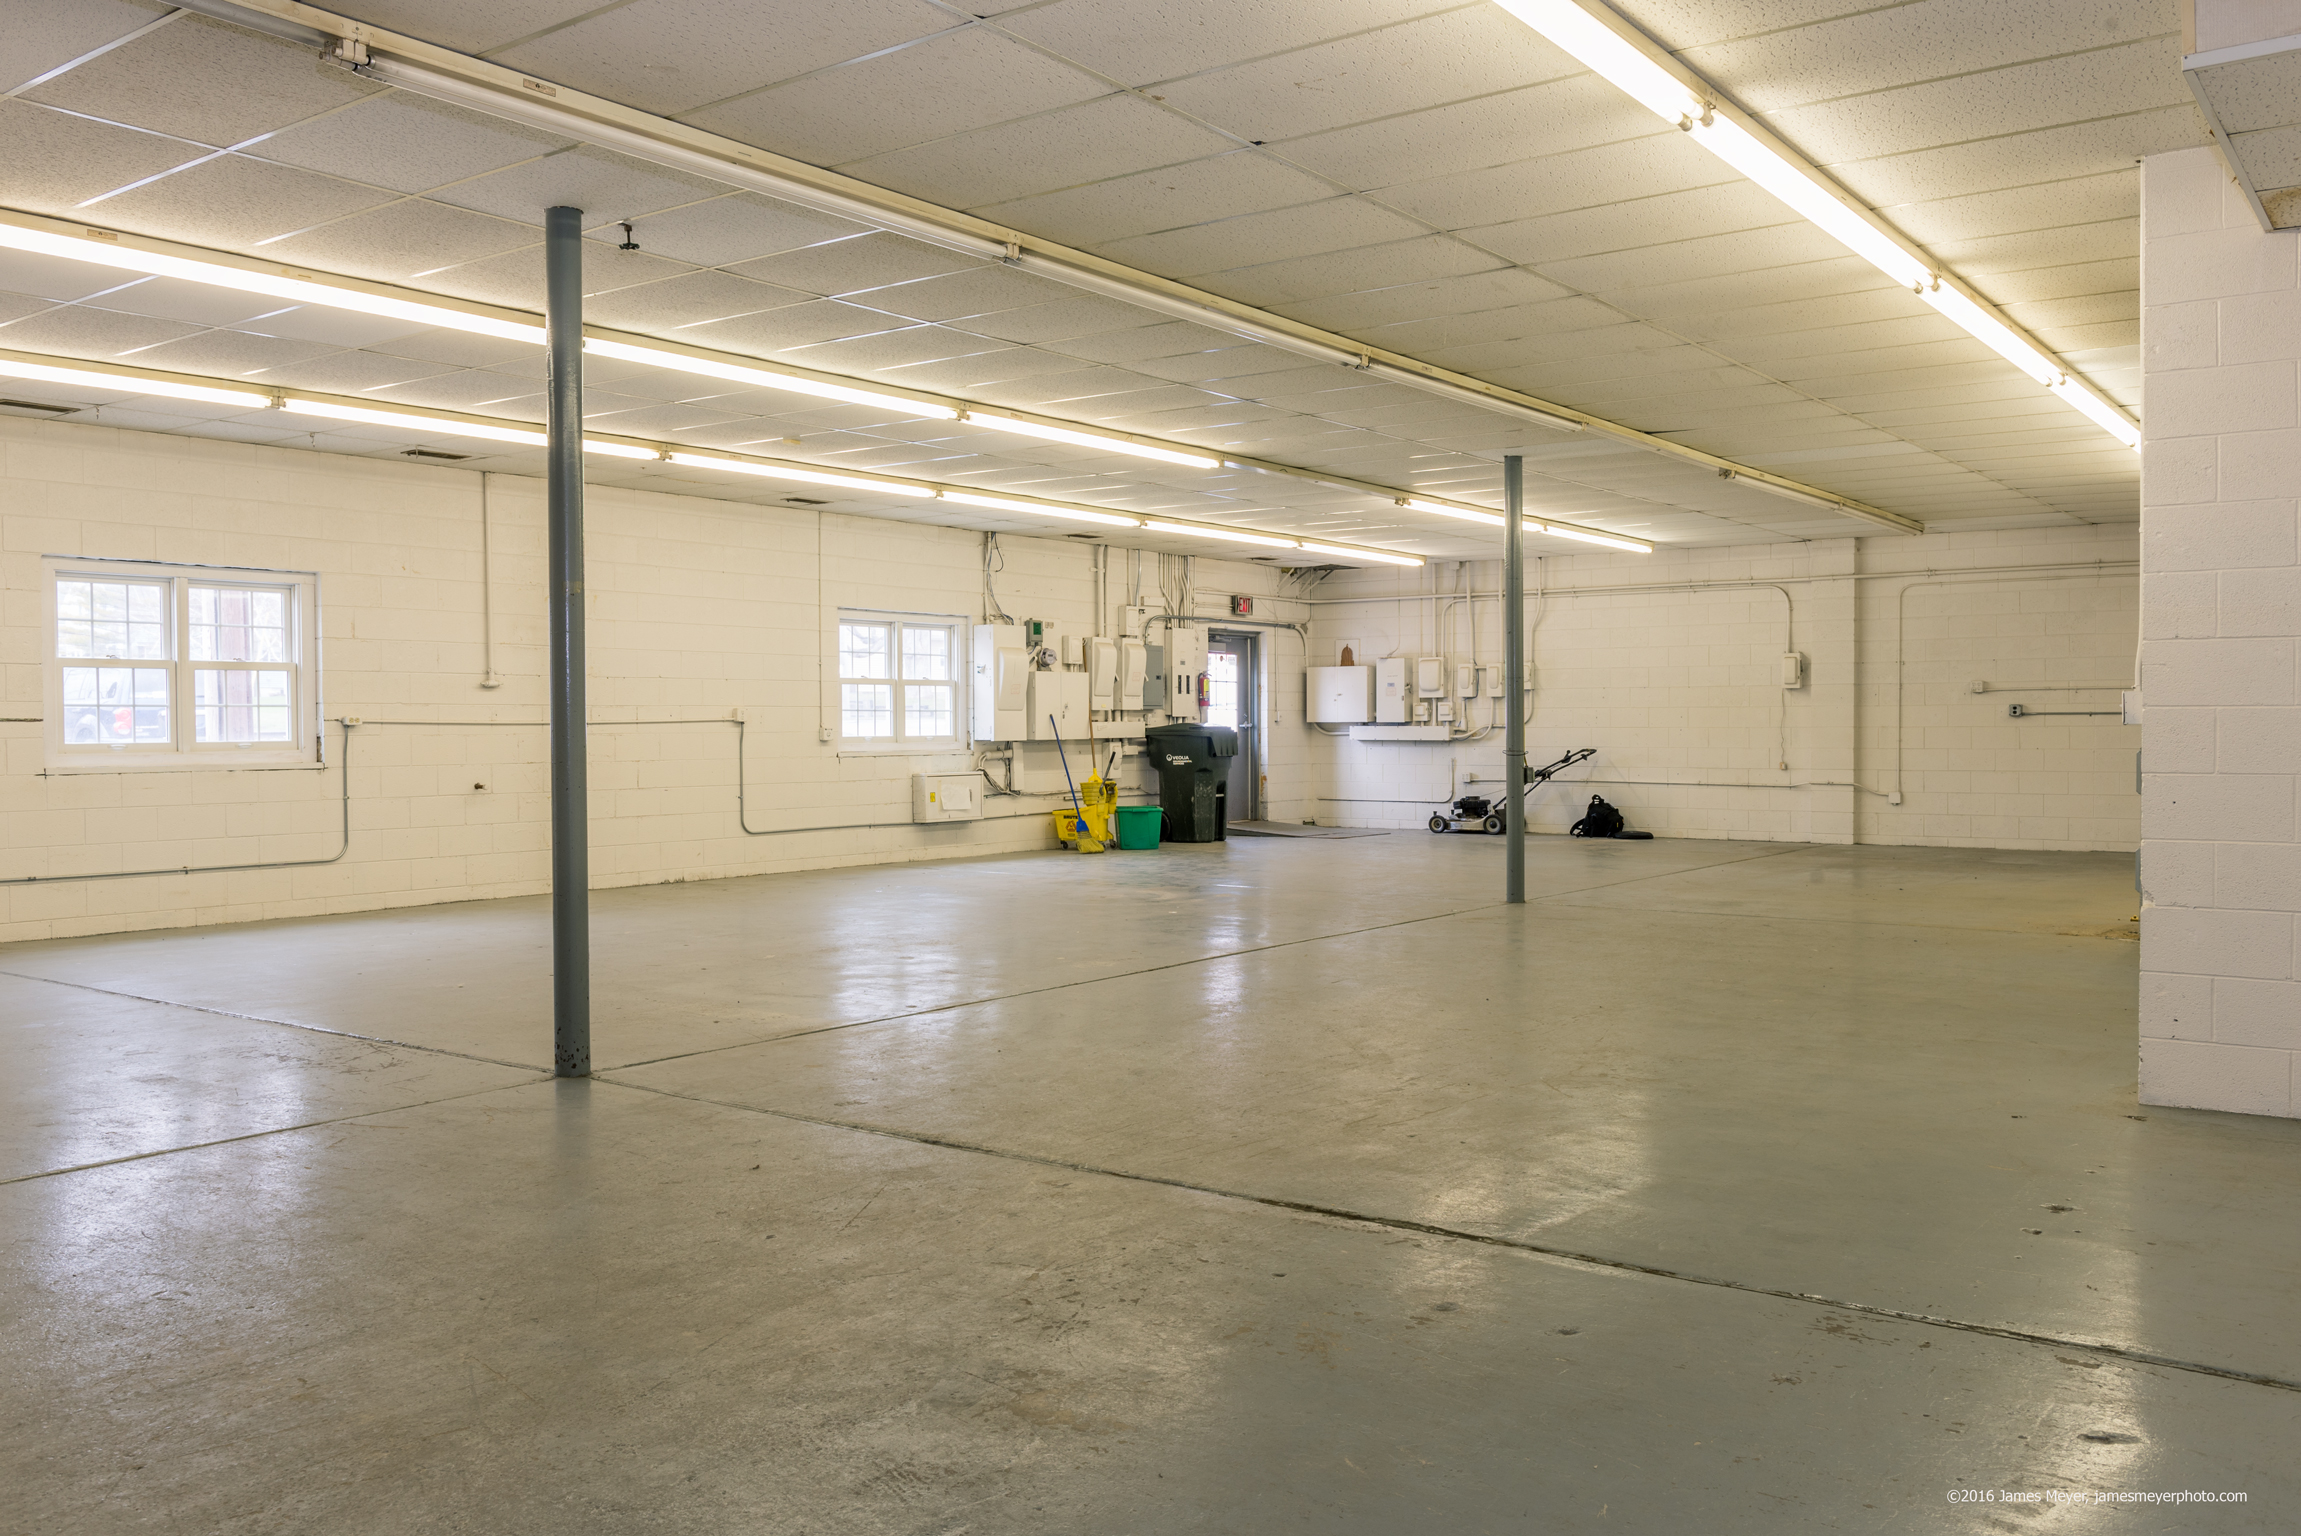 Warehouse space by James Meyer Photography